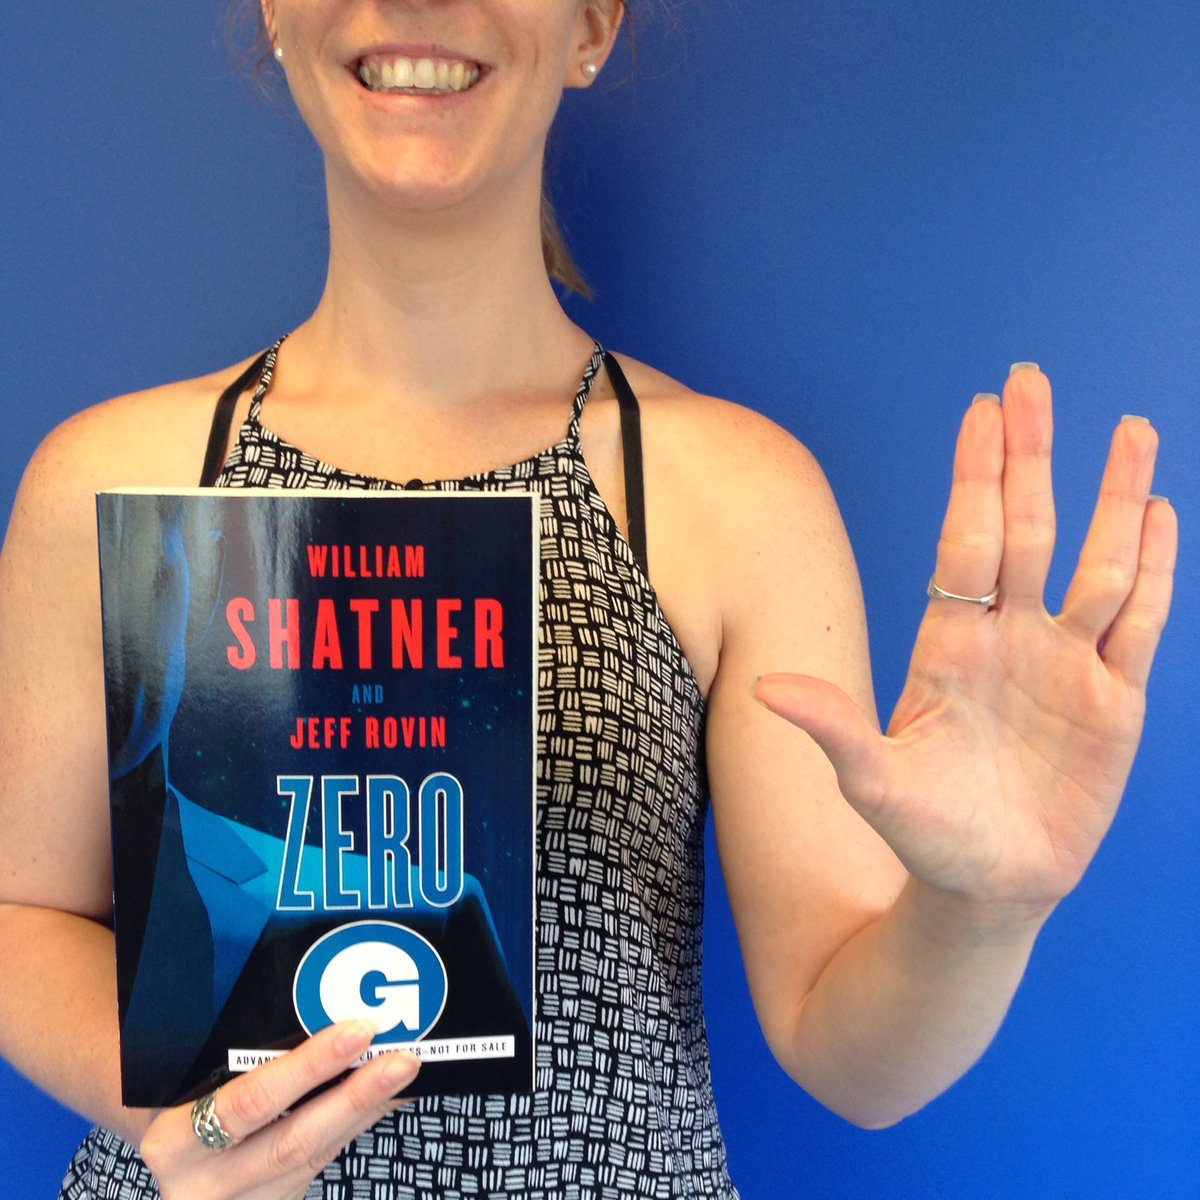 To celebrate #StarTrek50 we're giving away 3 advance copies of Zero G by @WilliamShatner! RT to enter.